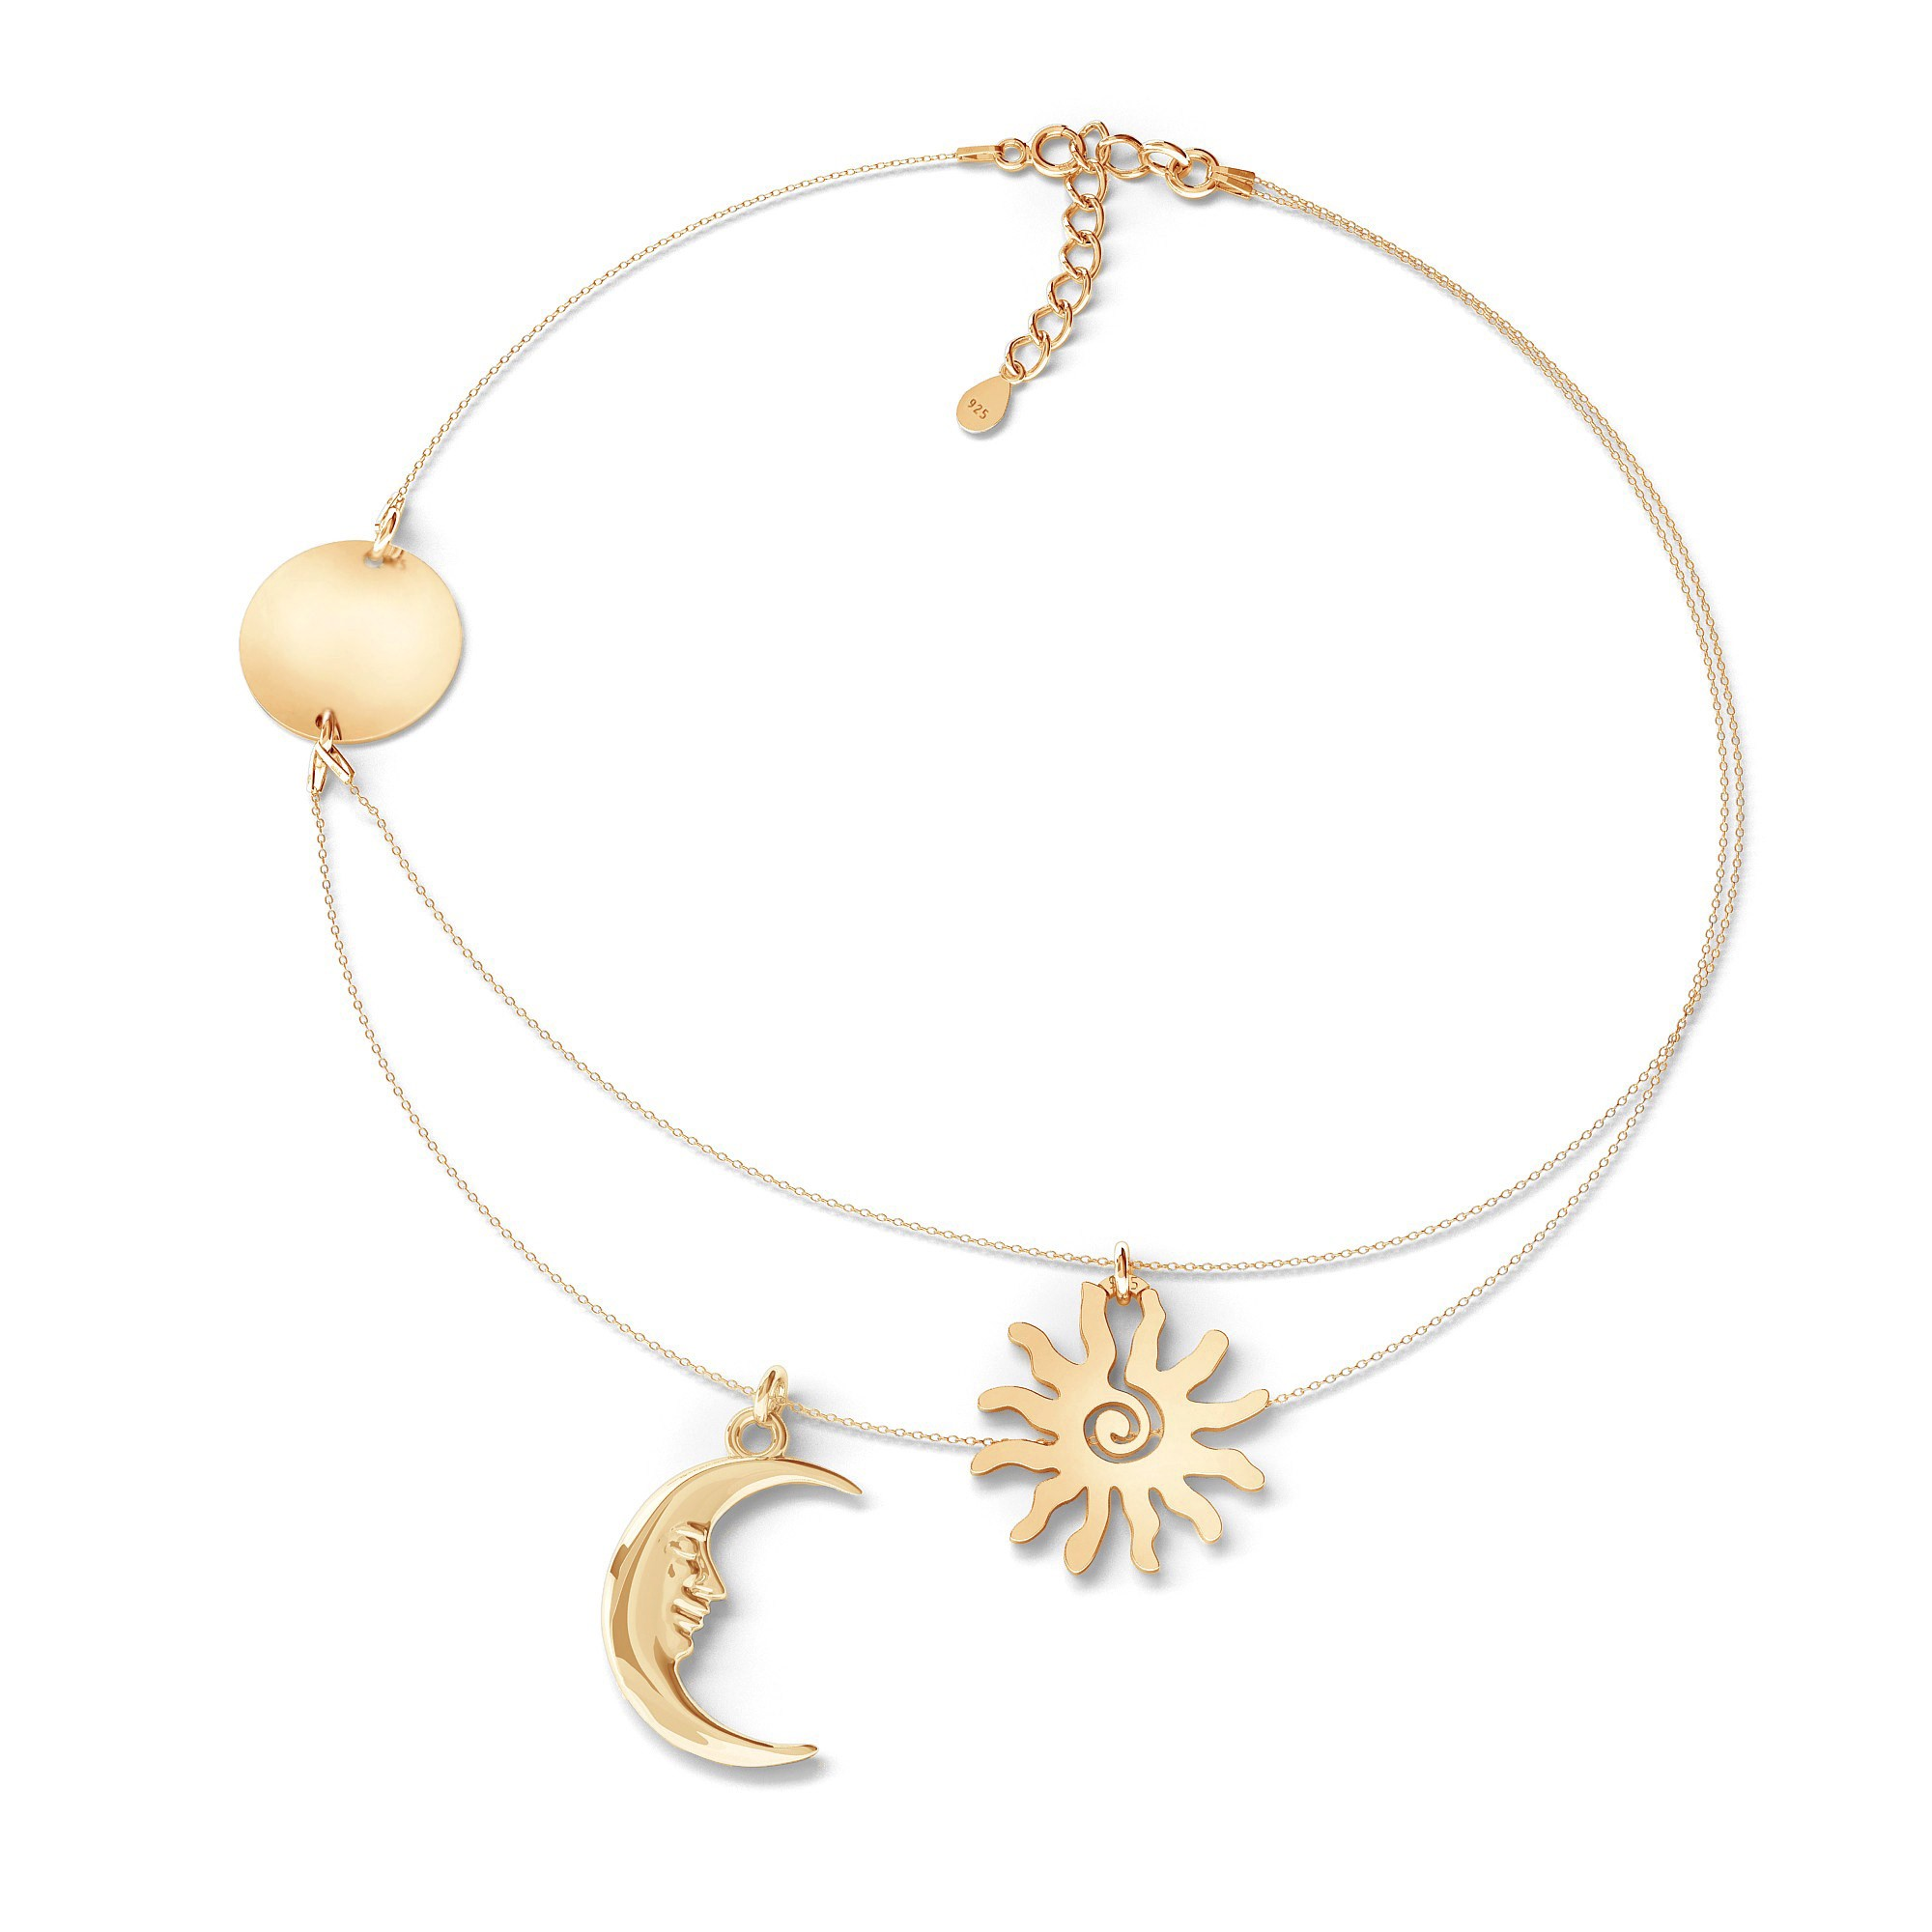 MOON necklace sterling silver 925